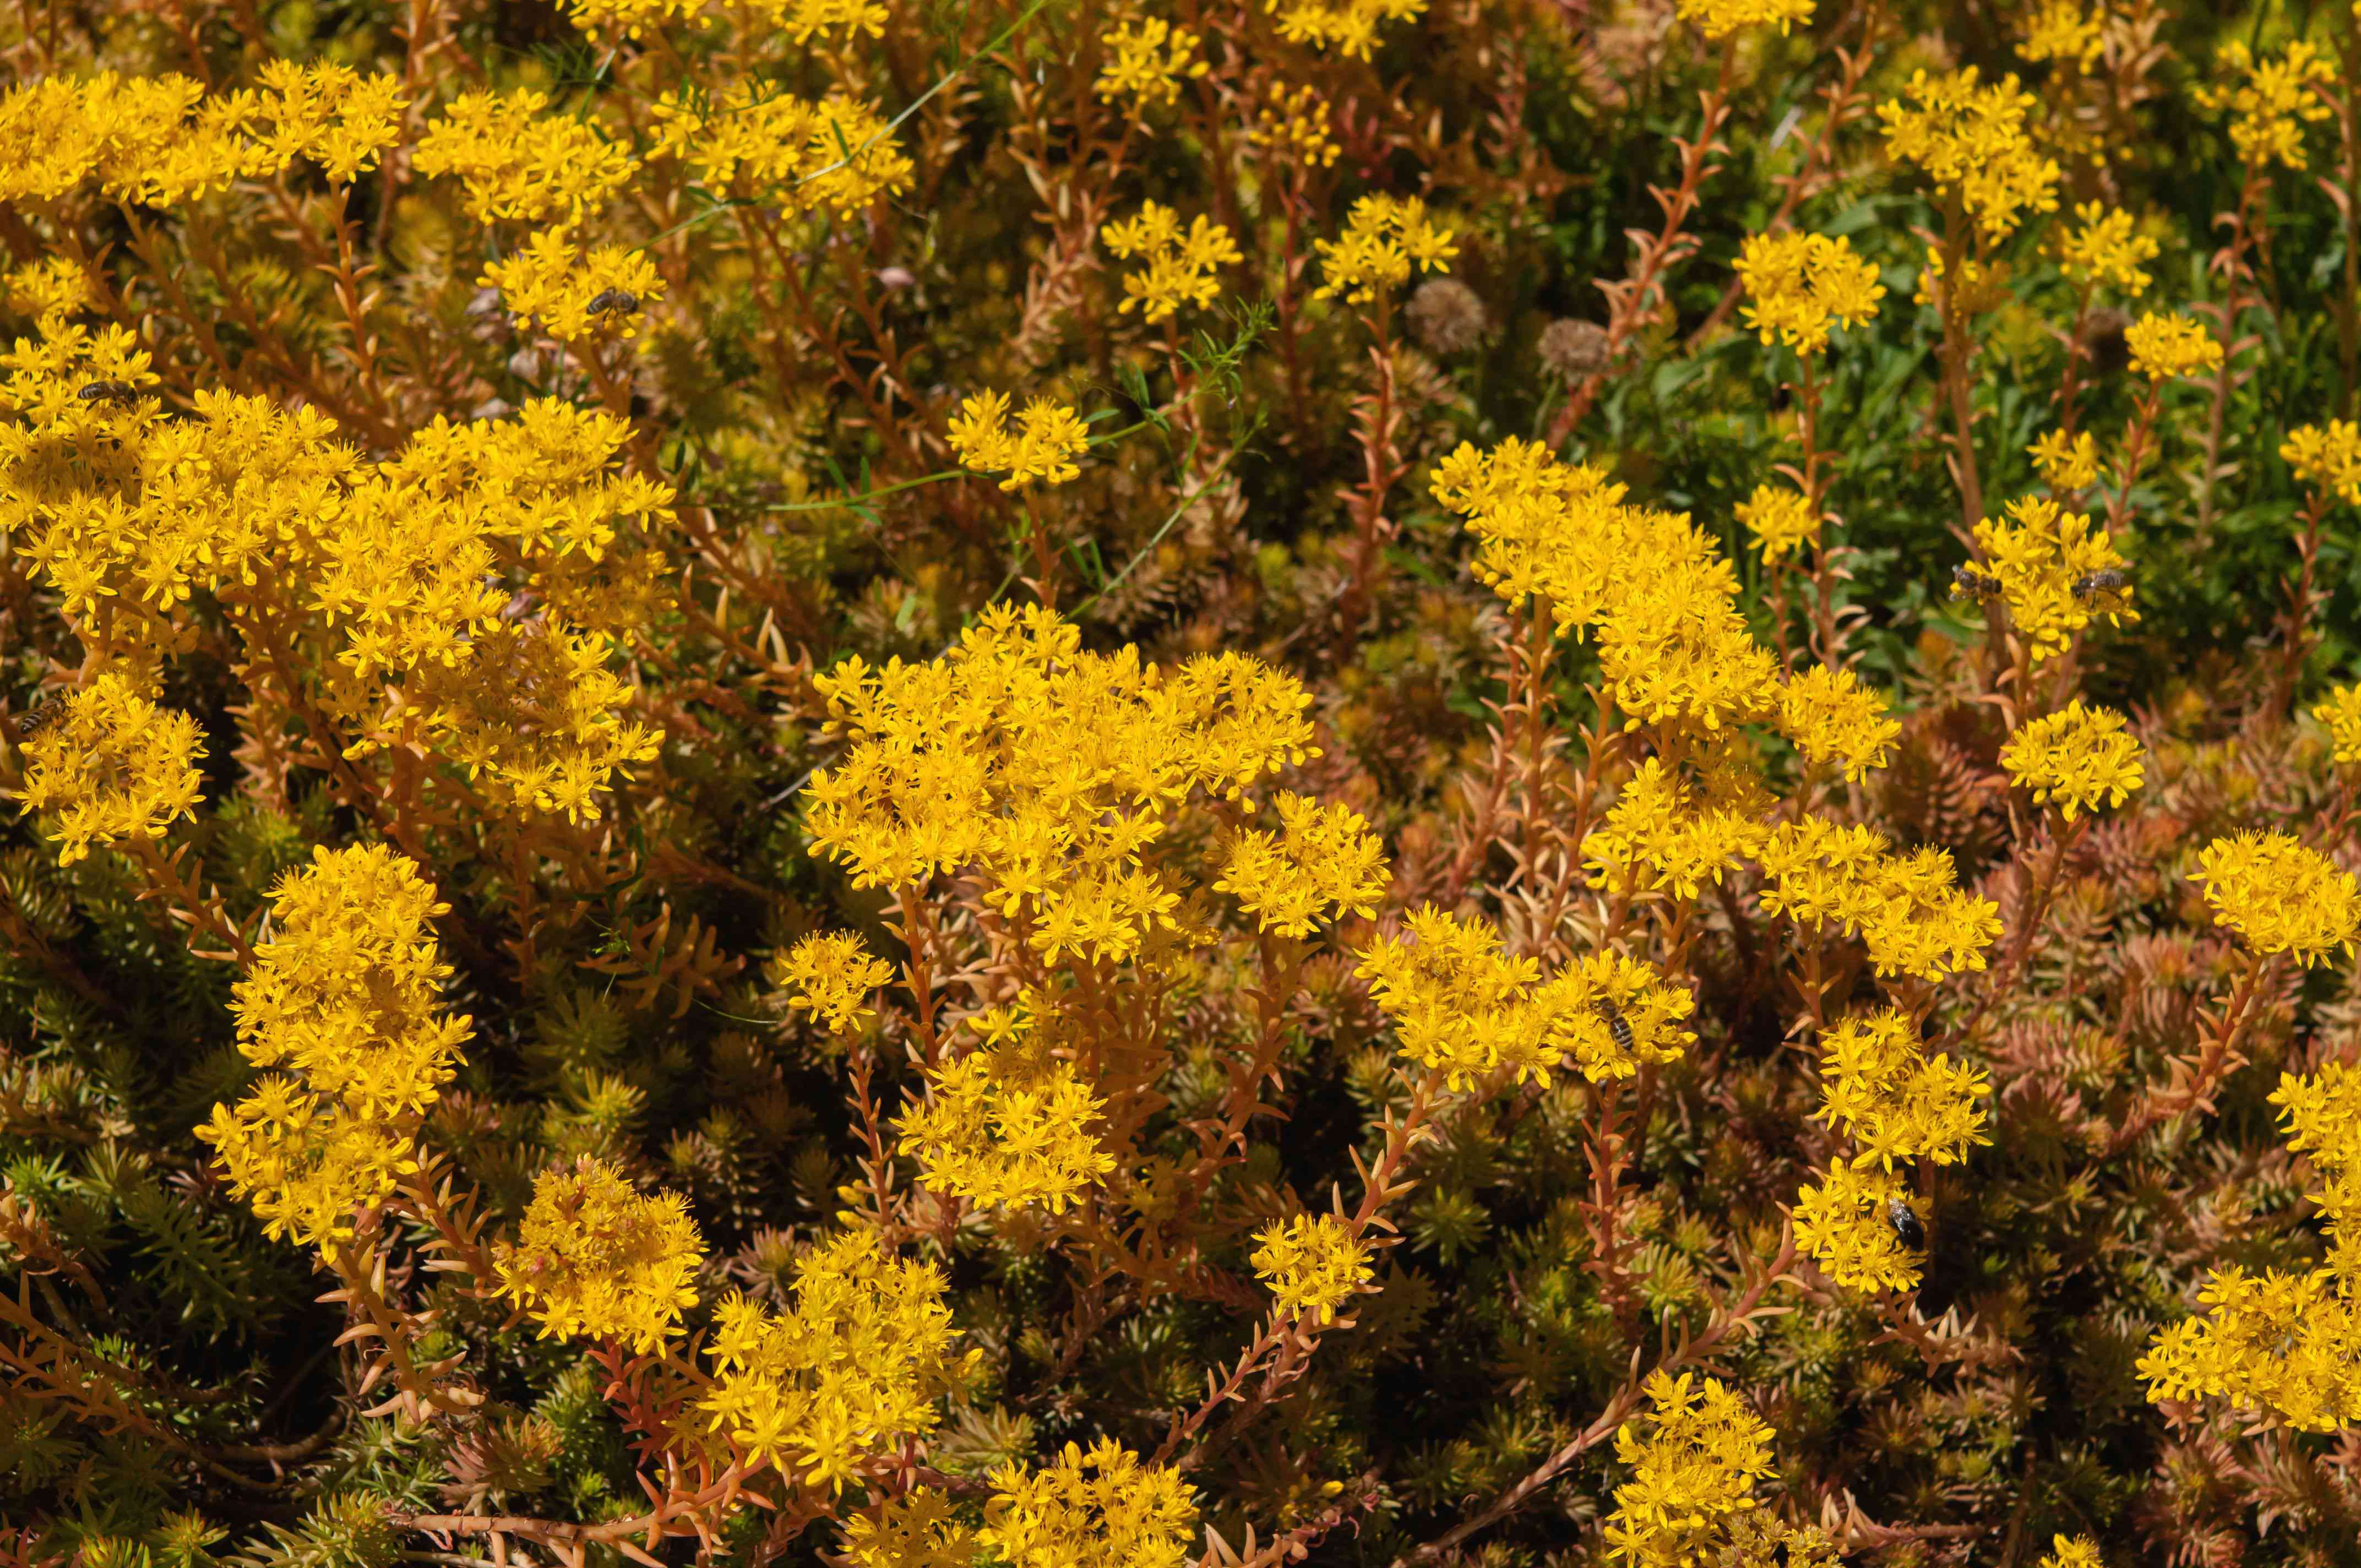 Angelina stonecrop with small, star-shaped yellow blooms on born spiked stems